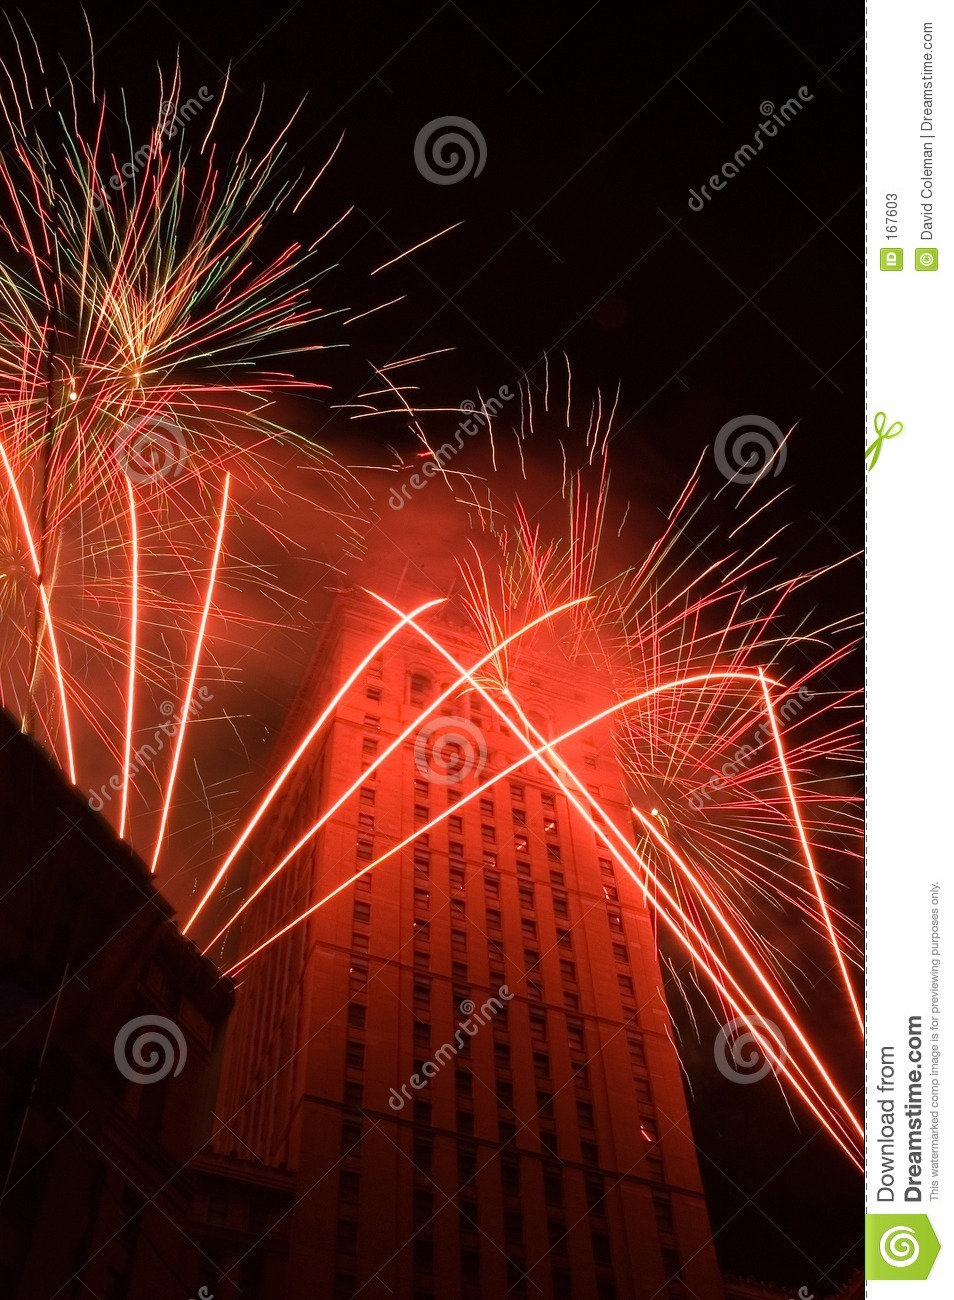 Red fireworks around a tall building